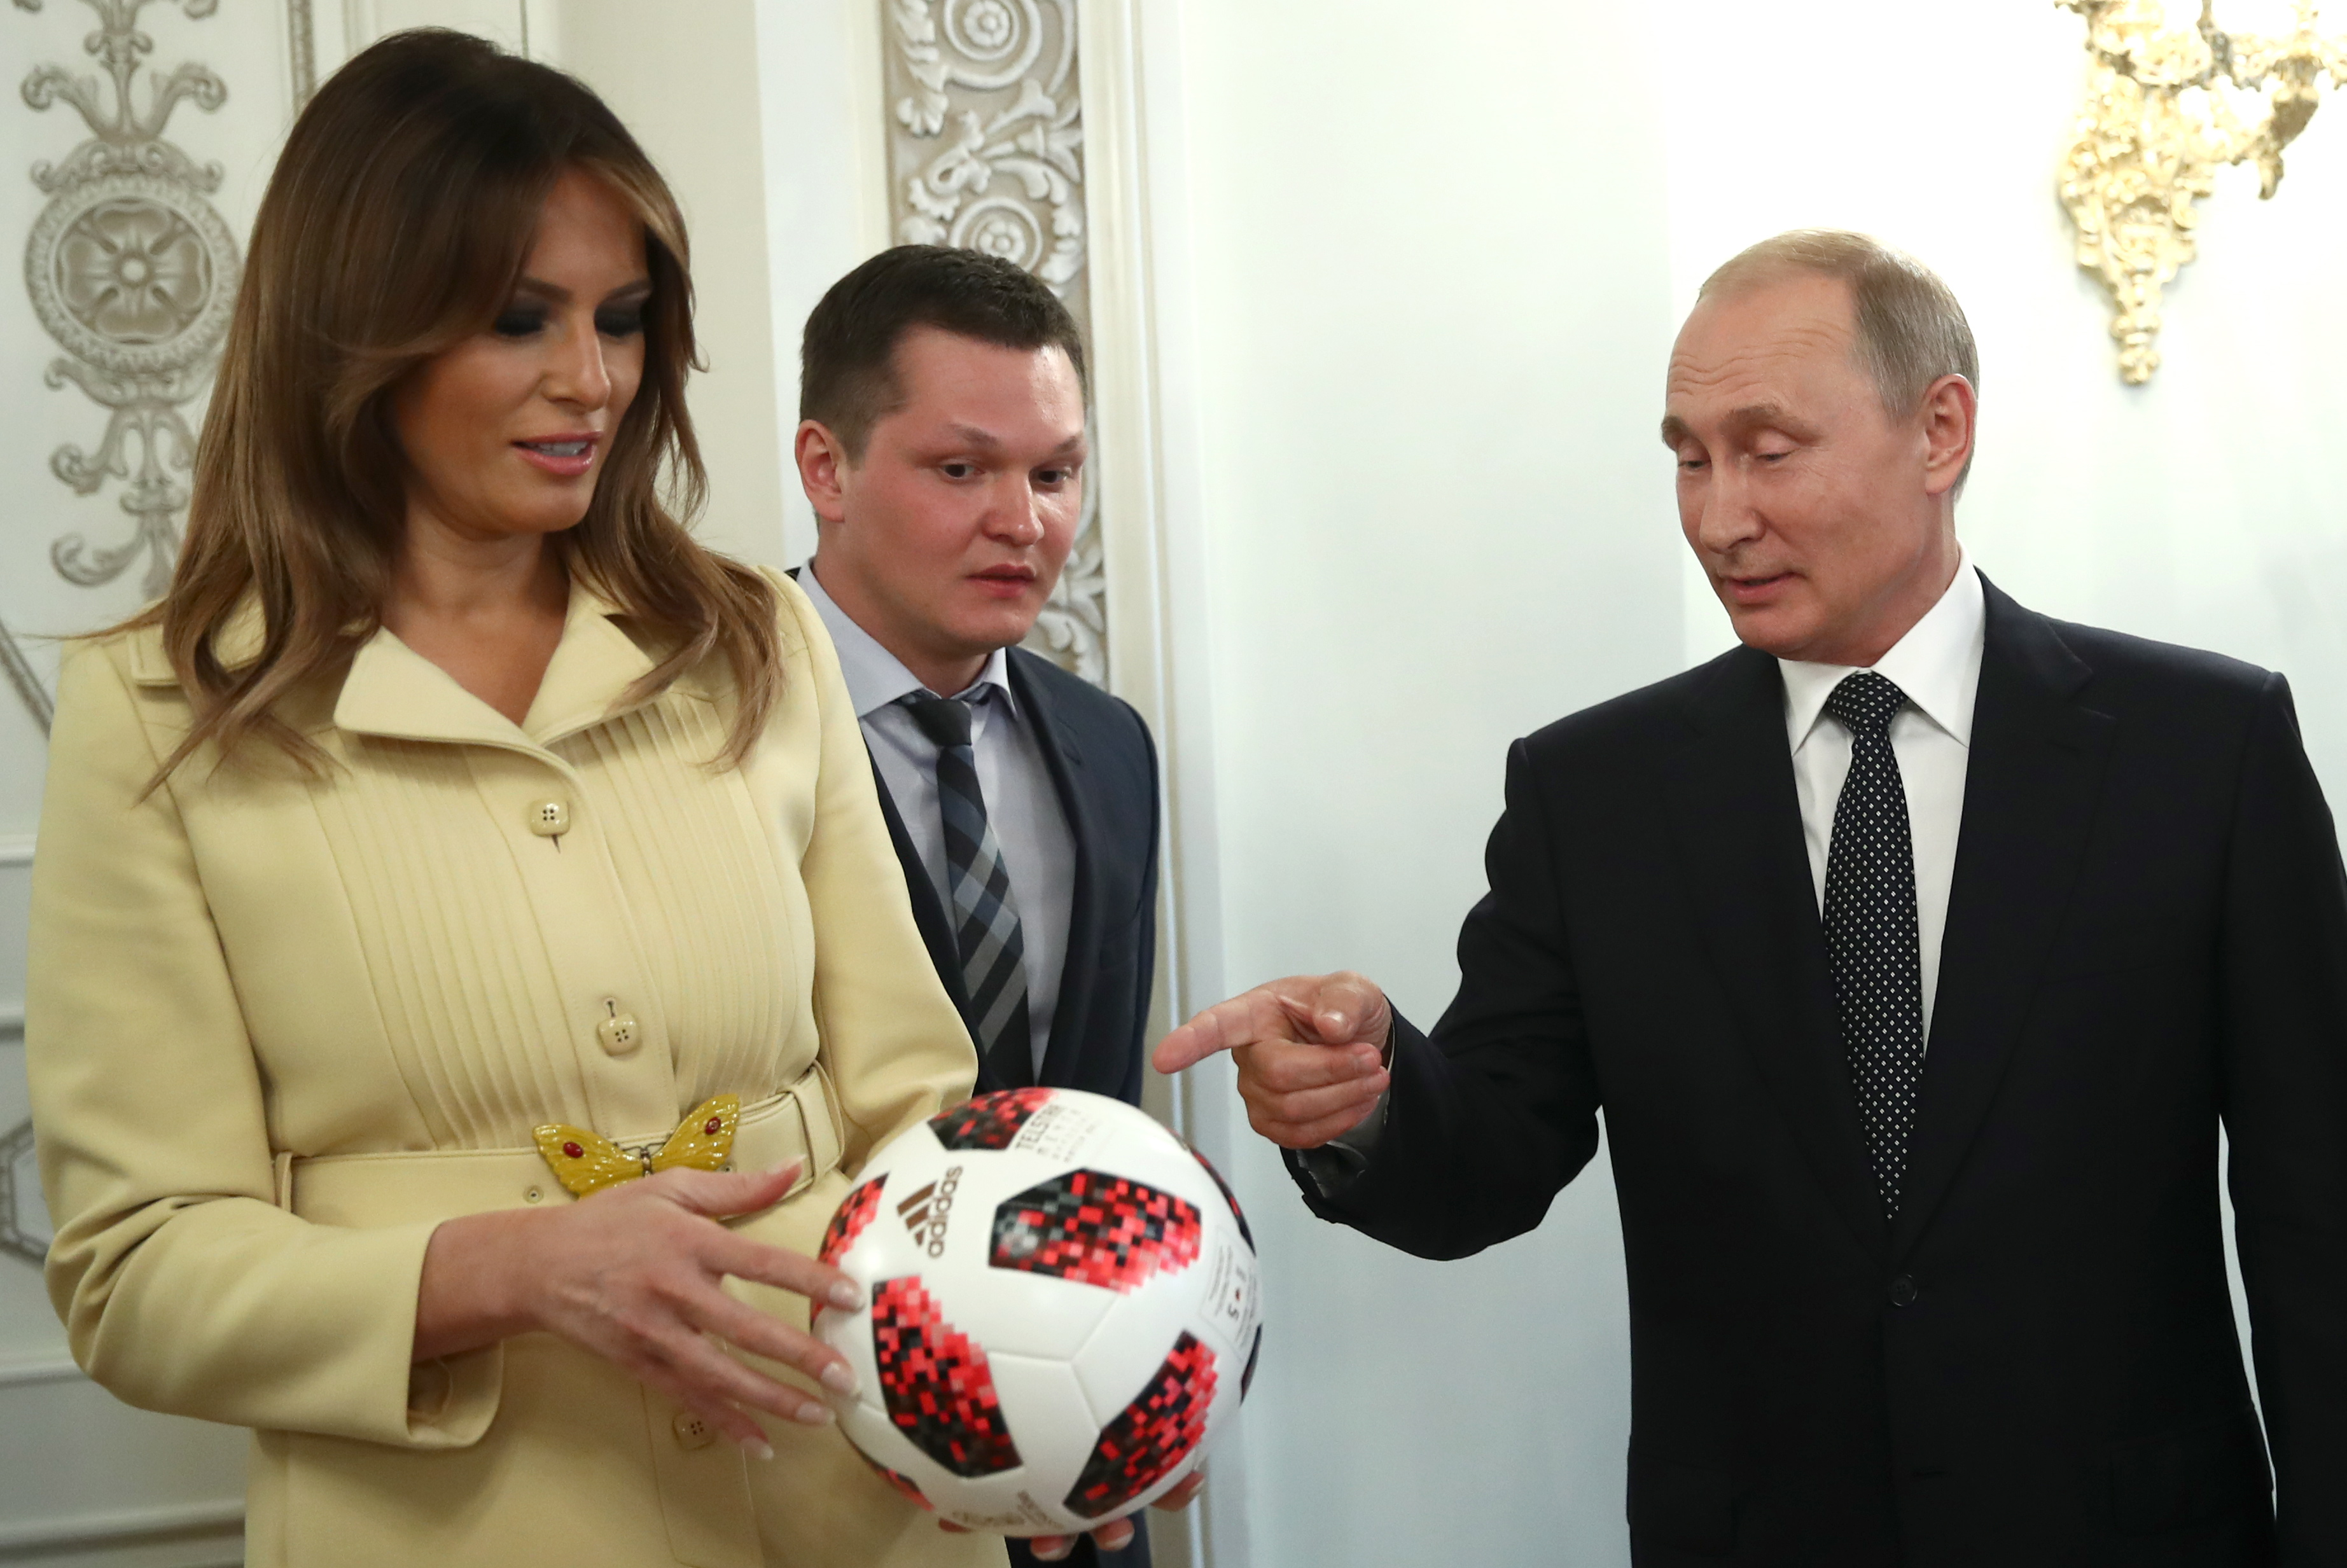 Watch Donald Trump Throw Vladimir Putin's Soccer Ball at Gucci-Clad Melania